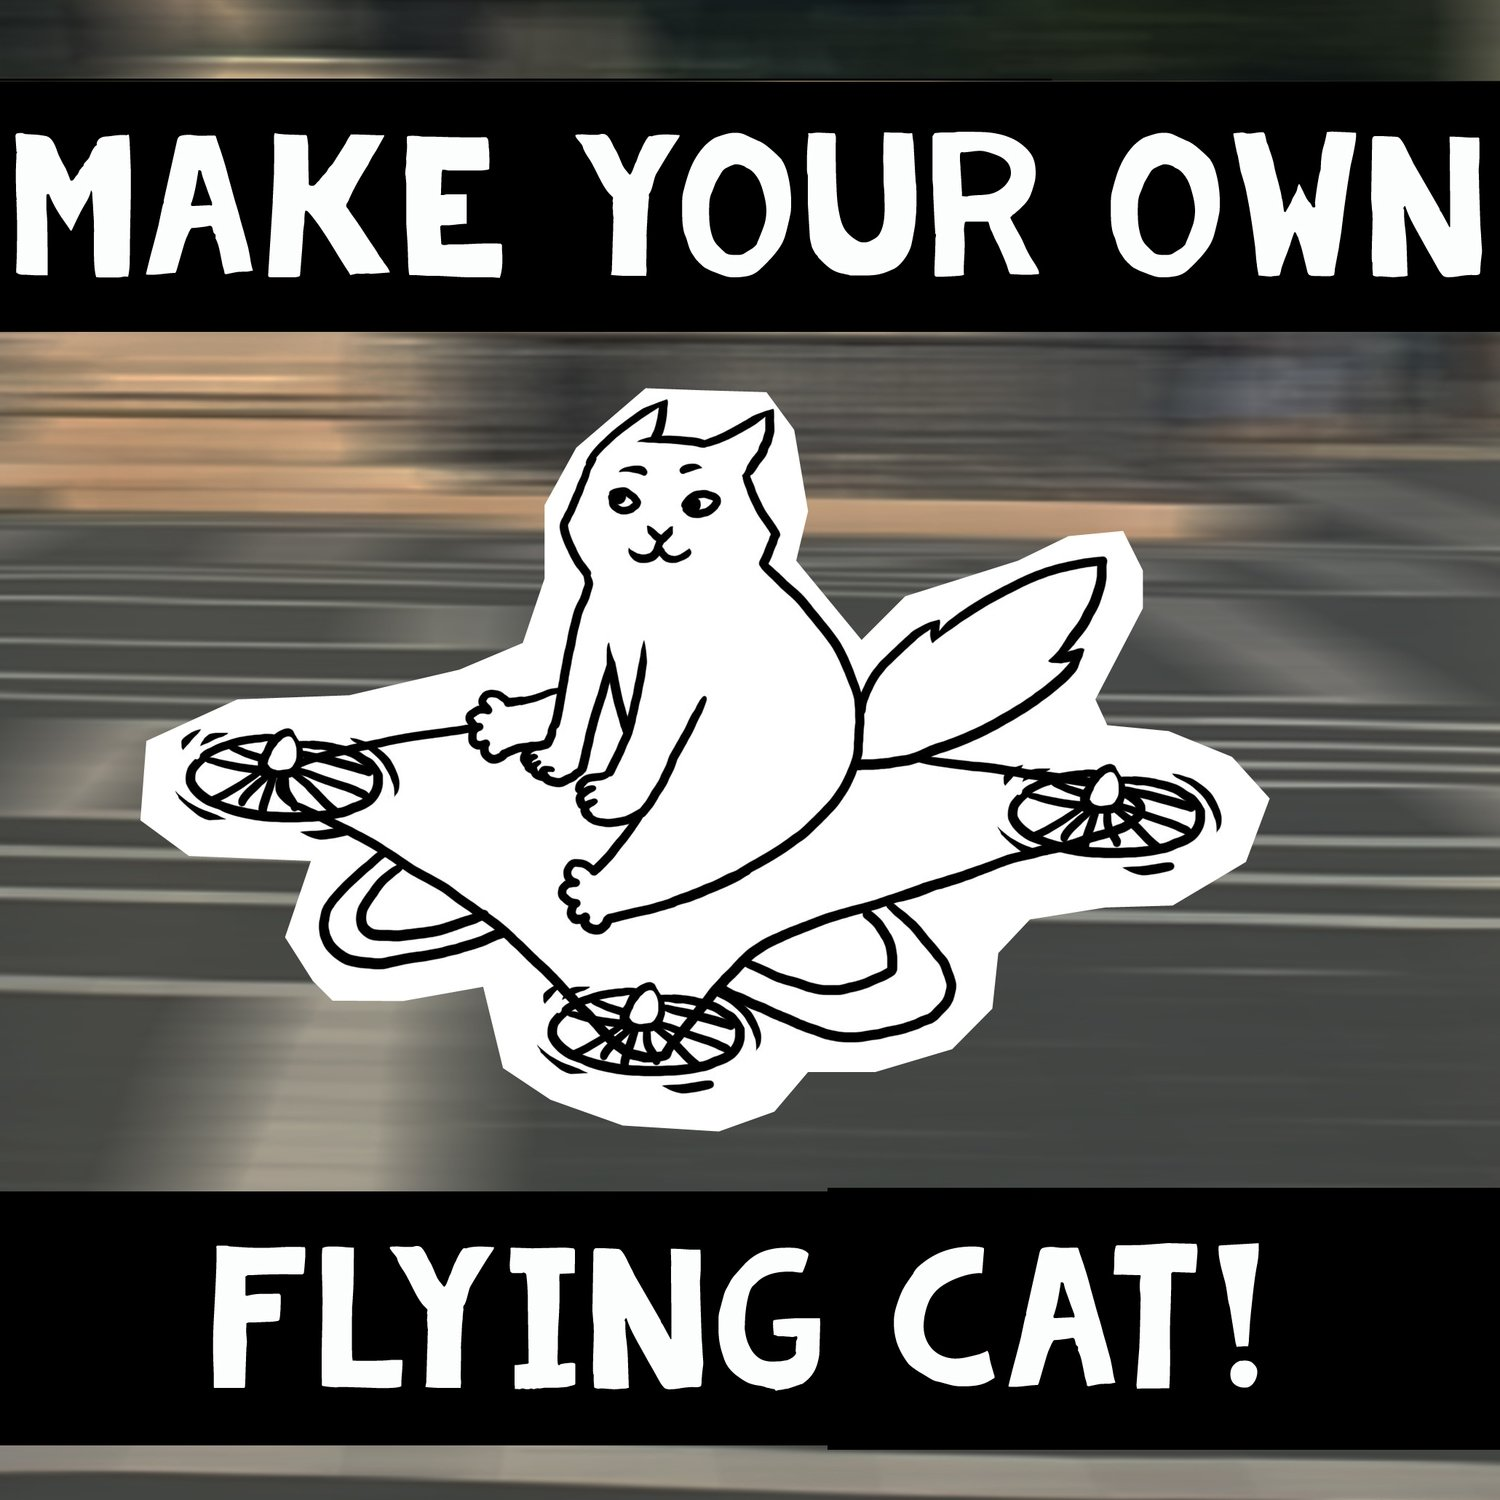 Make your own flying cat